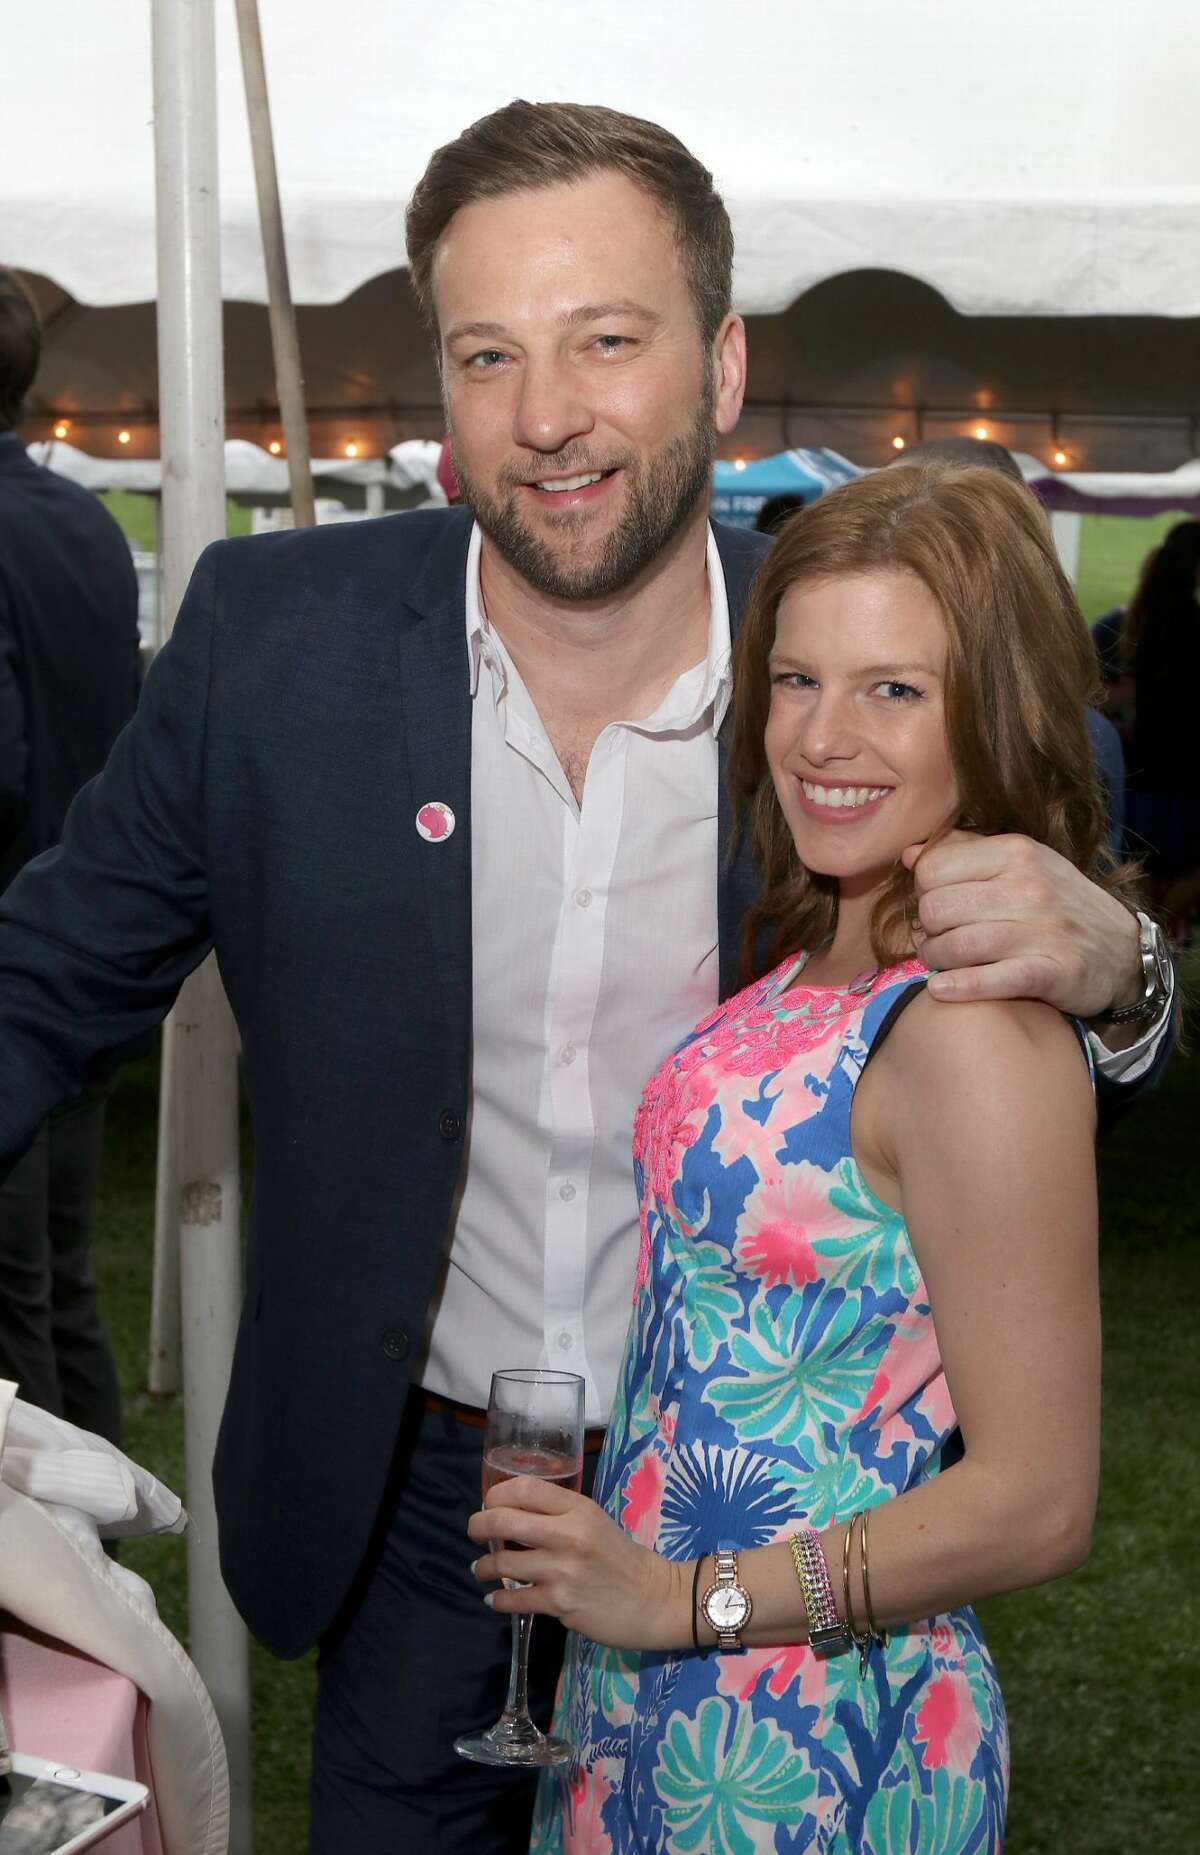 Were You Seen at Champagne on the Park, to benefit the Lark Street Business Improvement District, held in Albany's Washington Park on Thursday, May 10, 2018?